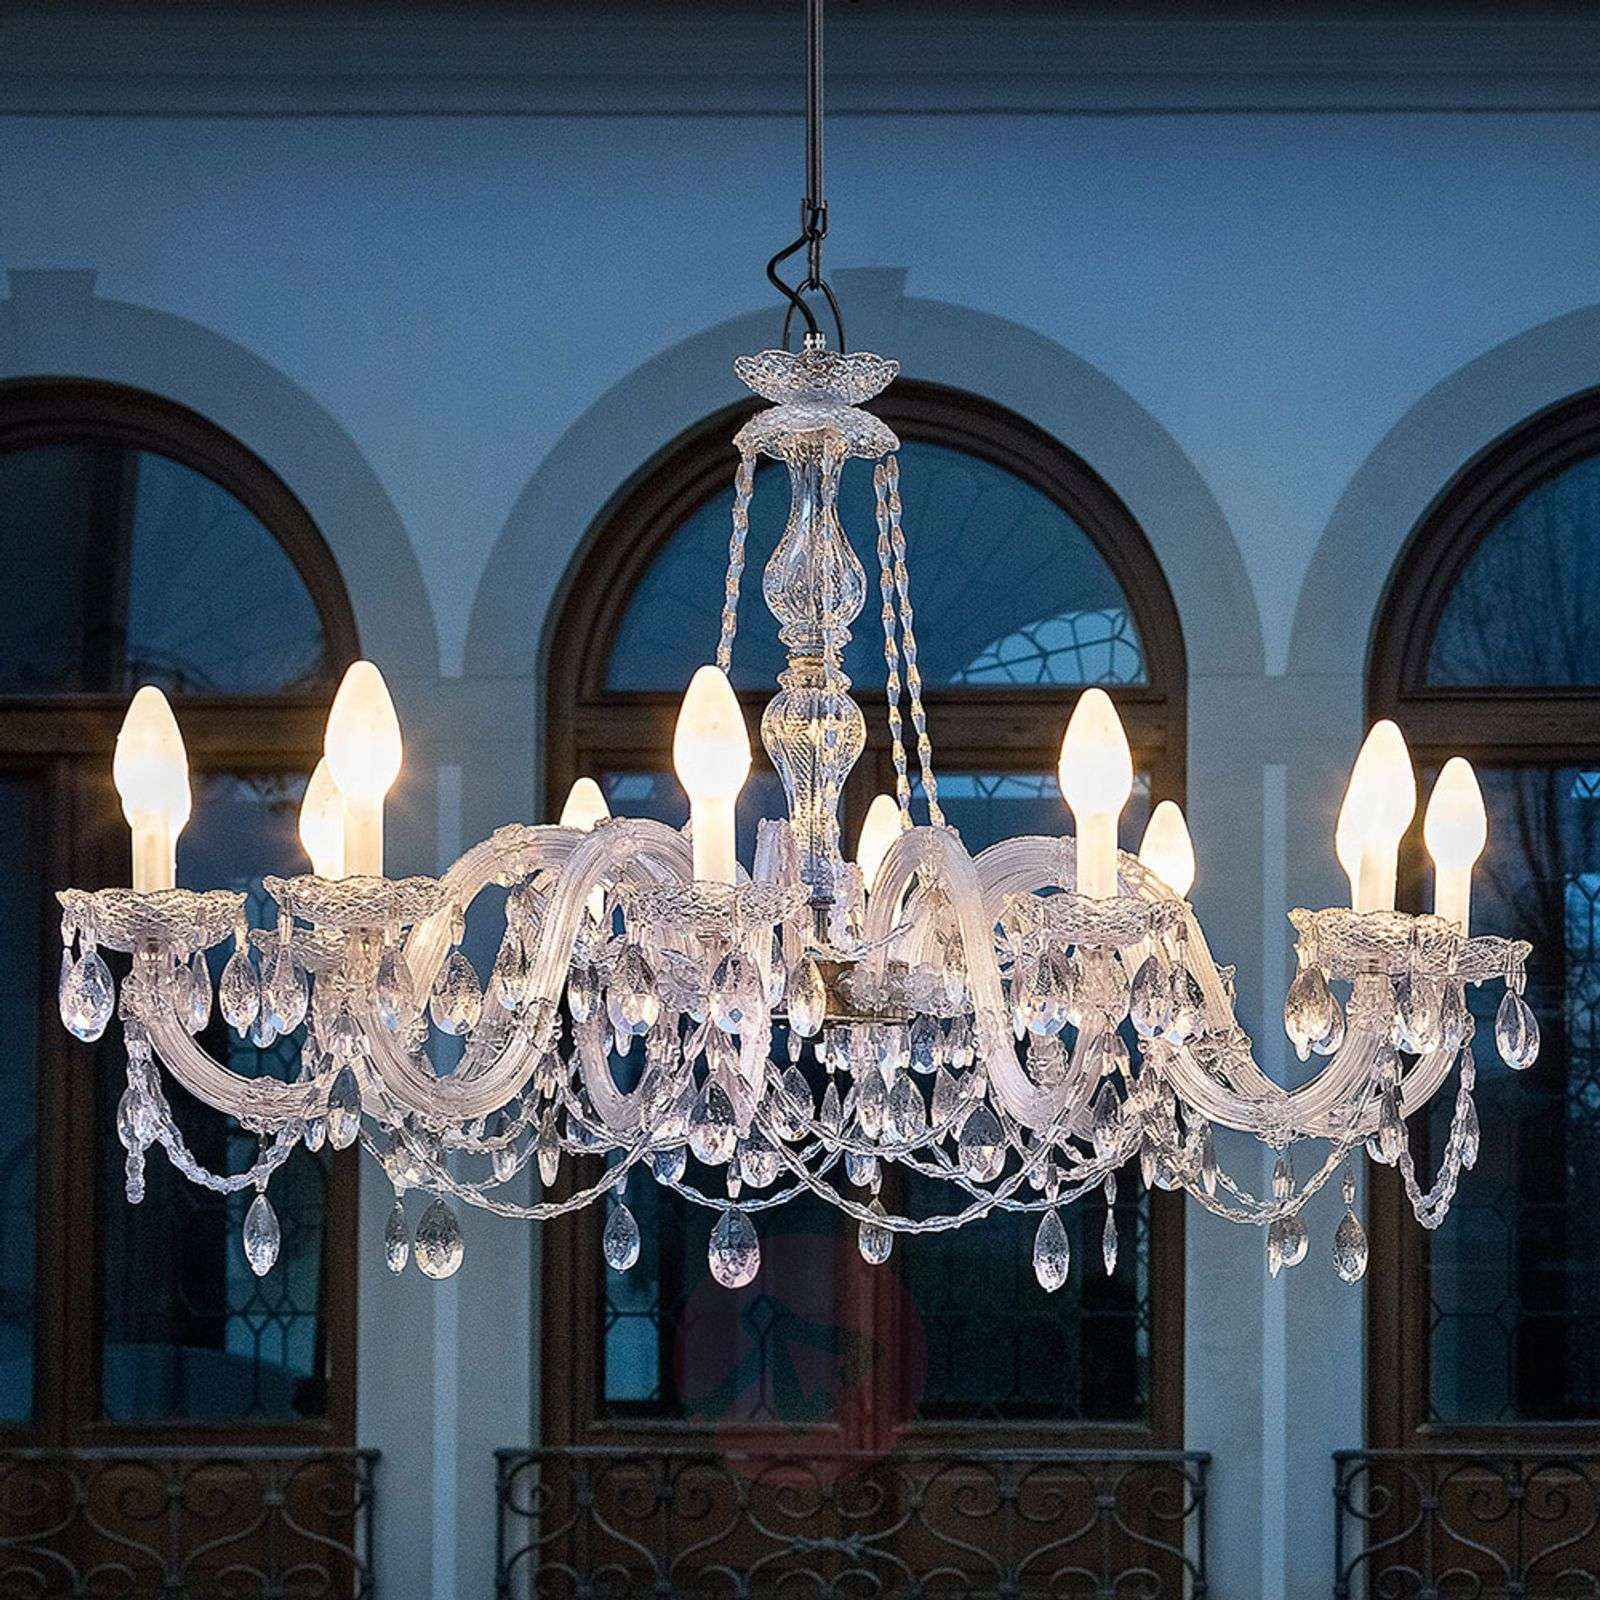 Outdoor Lighting Company: Drylight S12 12-bulb Outdoor LED Chandelier